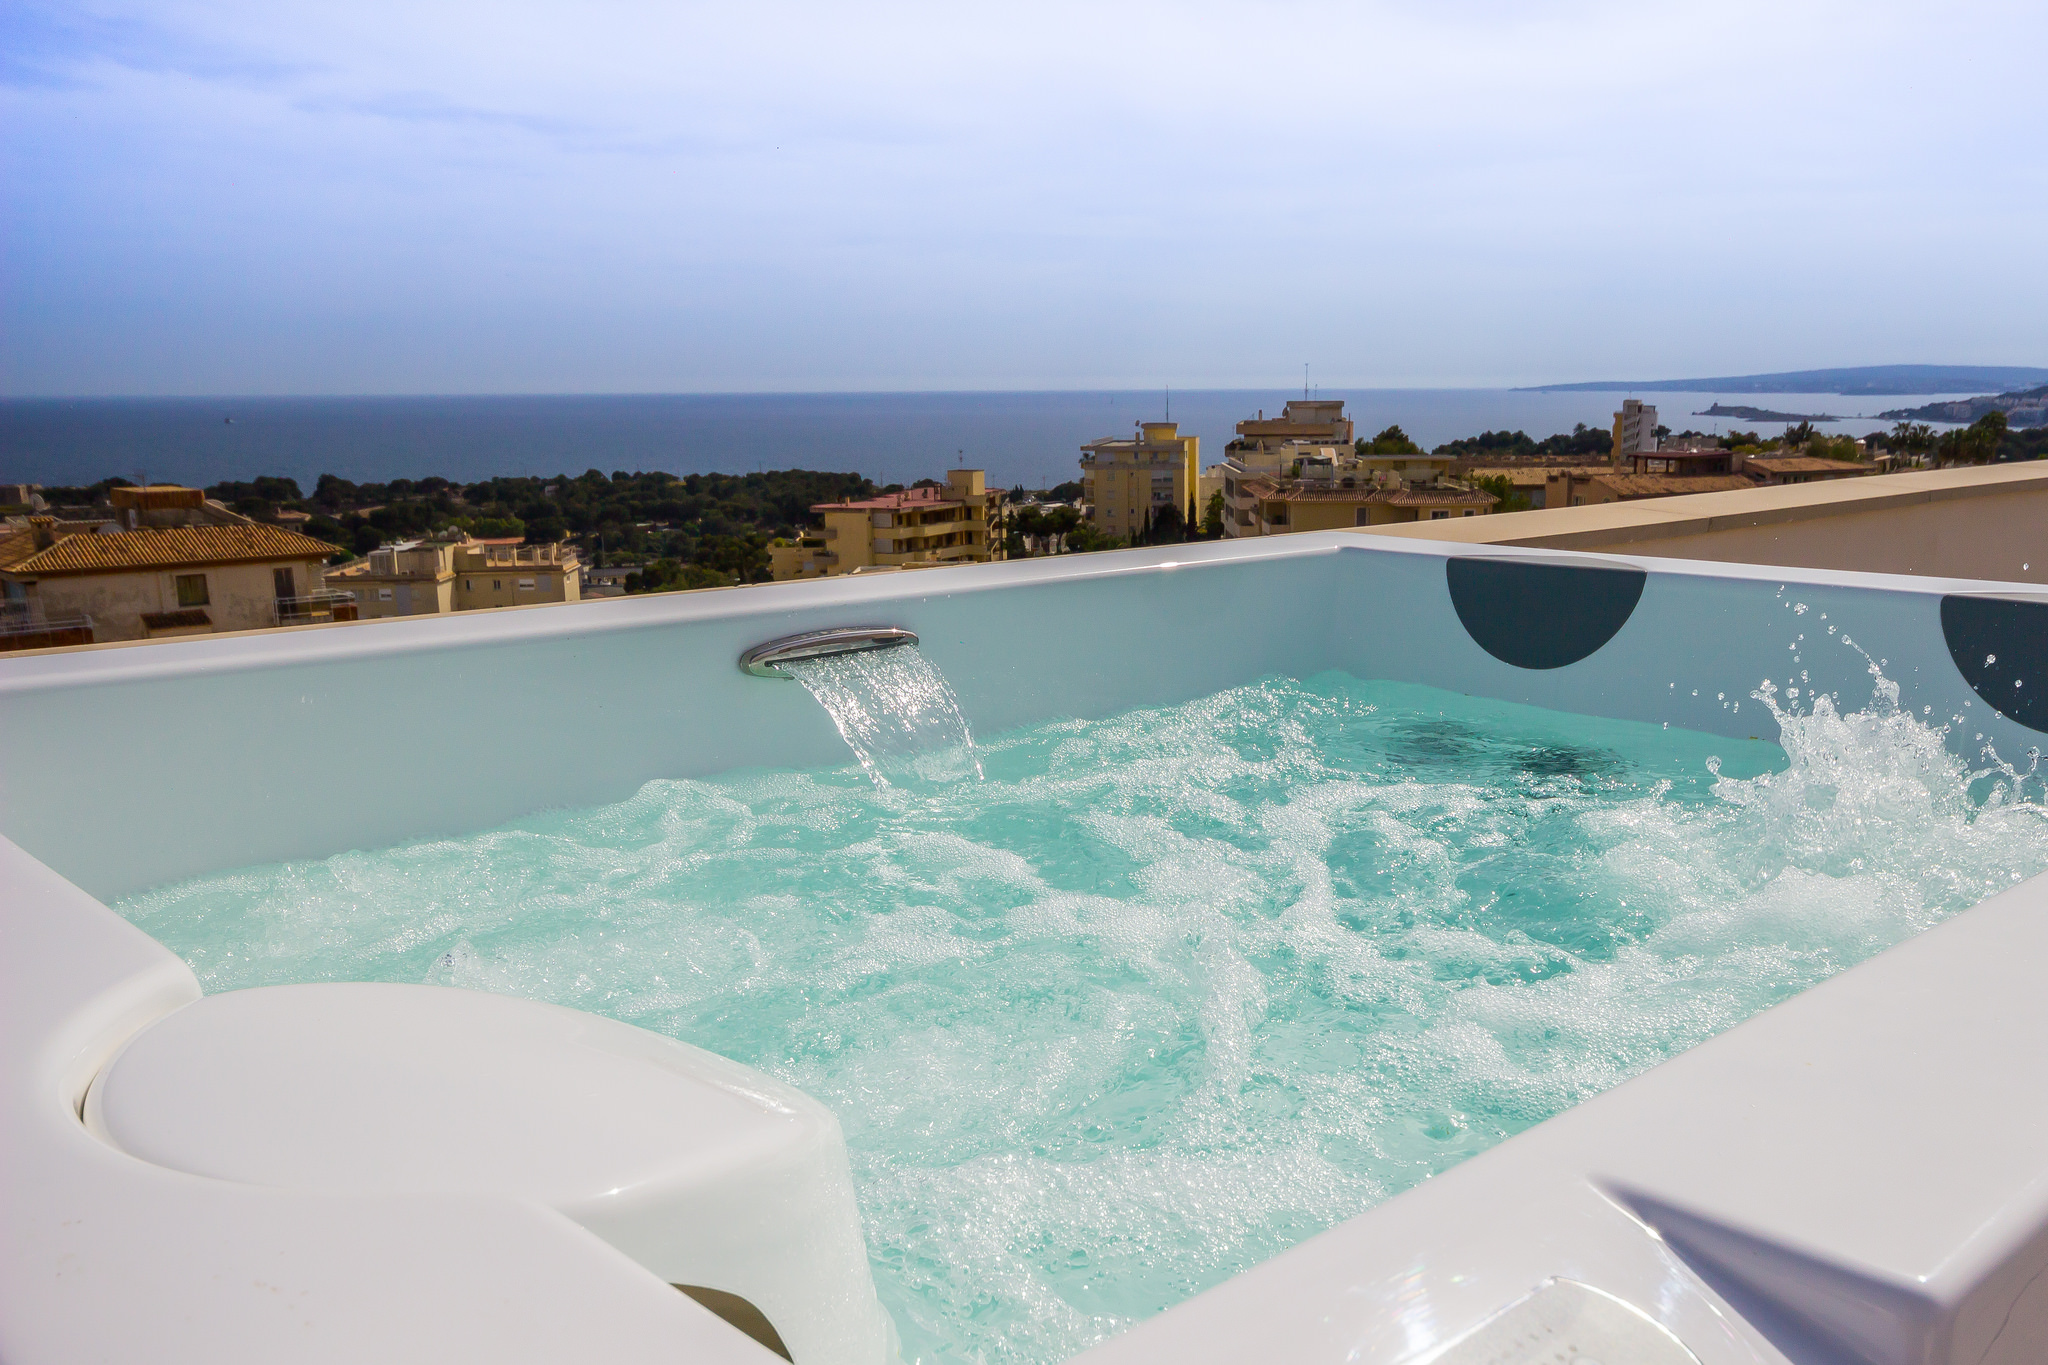 Jacuzzi Pool Bilder Top Five Benefits Of Owning Your Own Hot Tub Dallas Pool